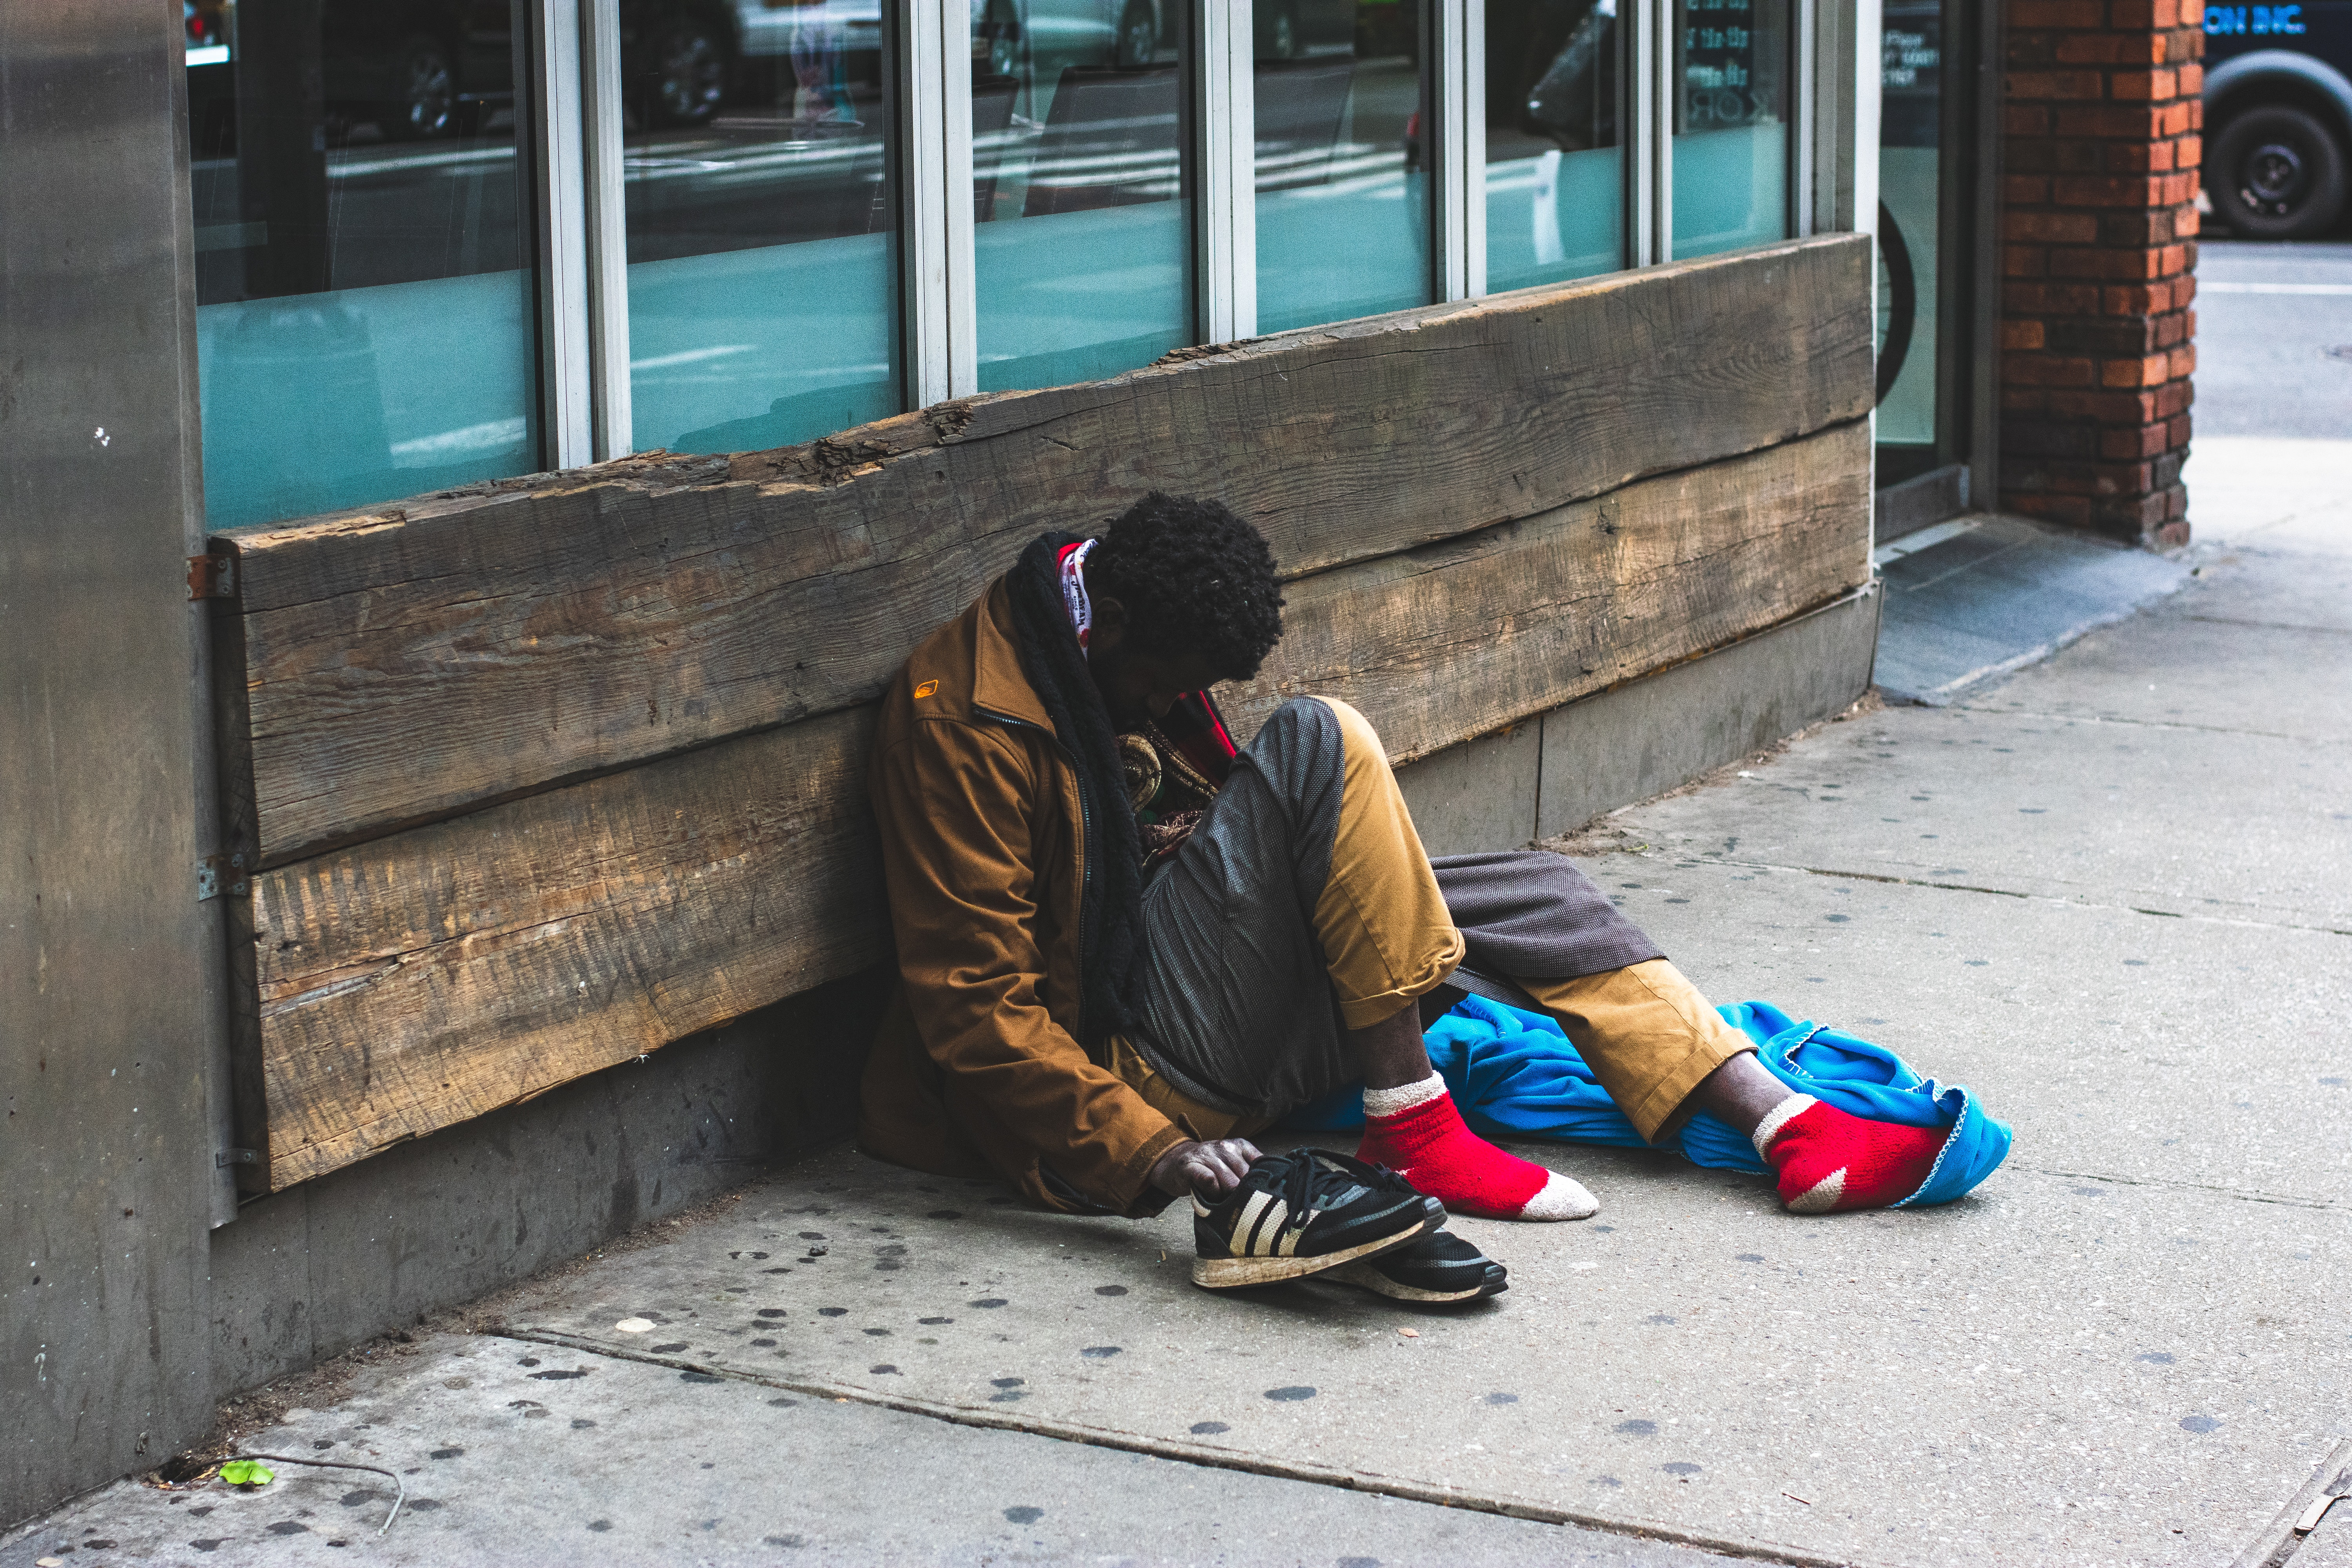 City of Austin Considers Purchasing Hotels to House the Homeless